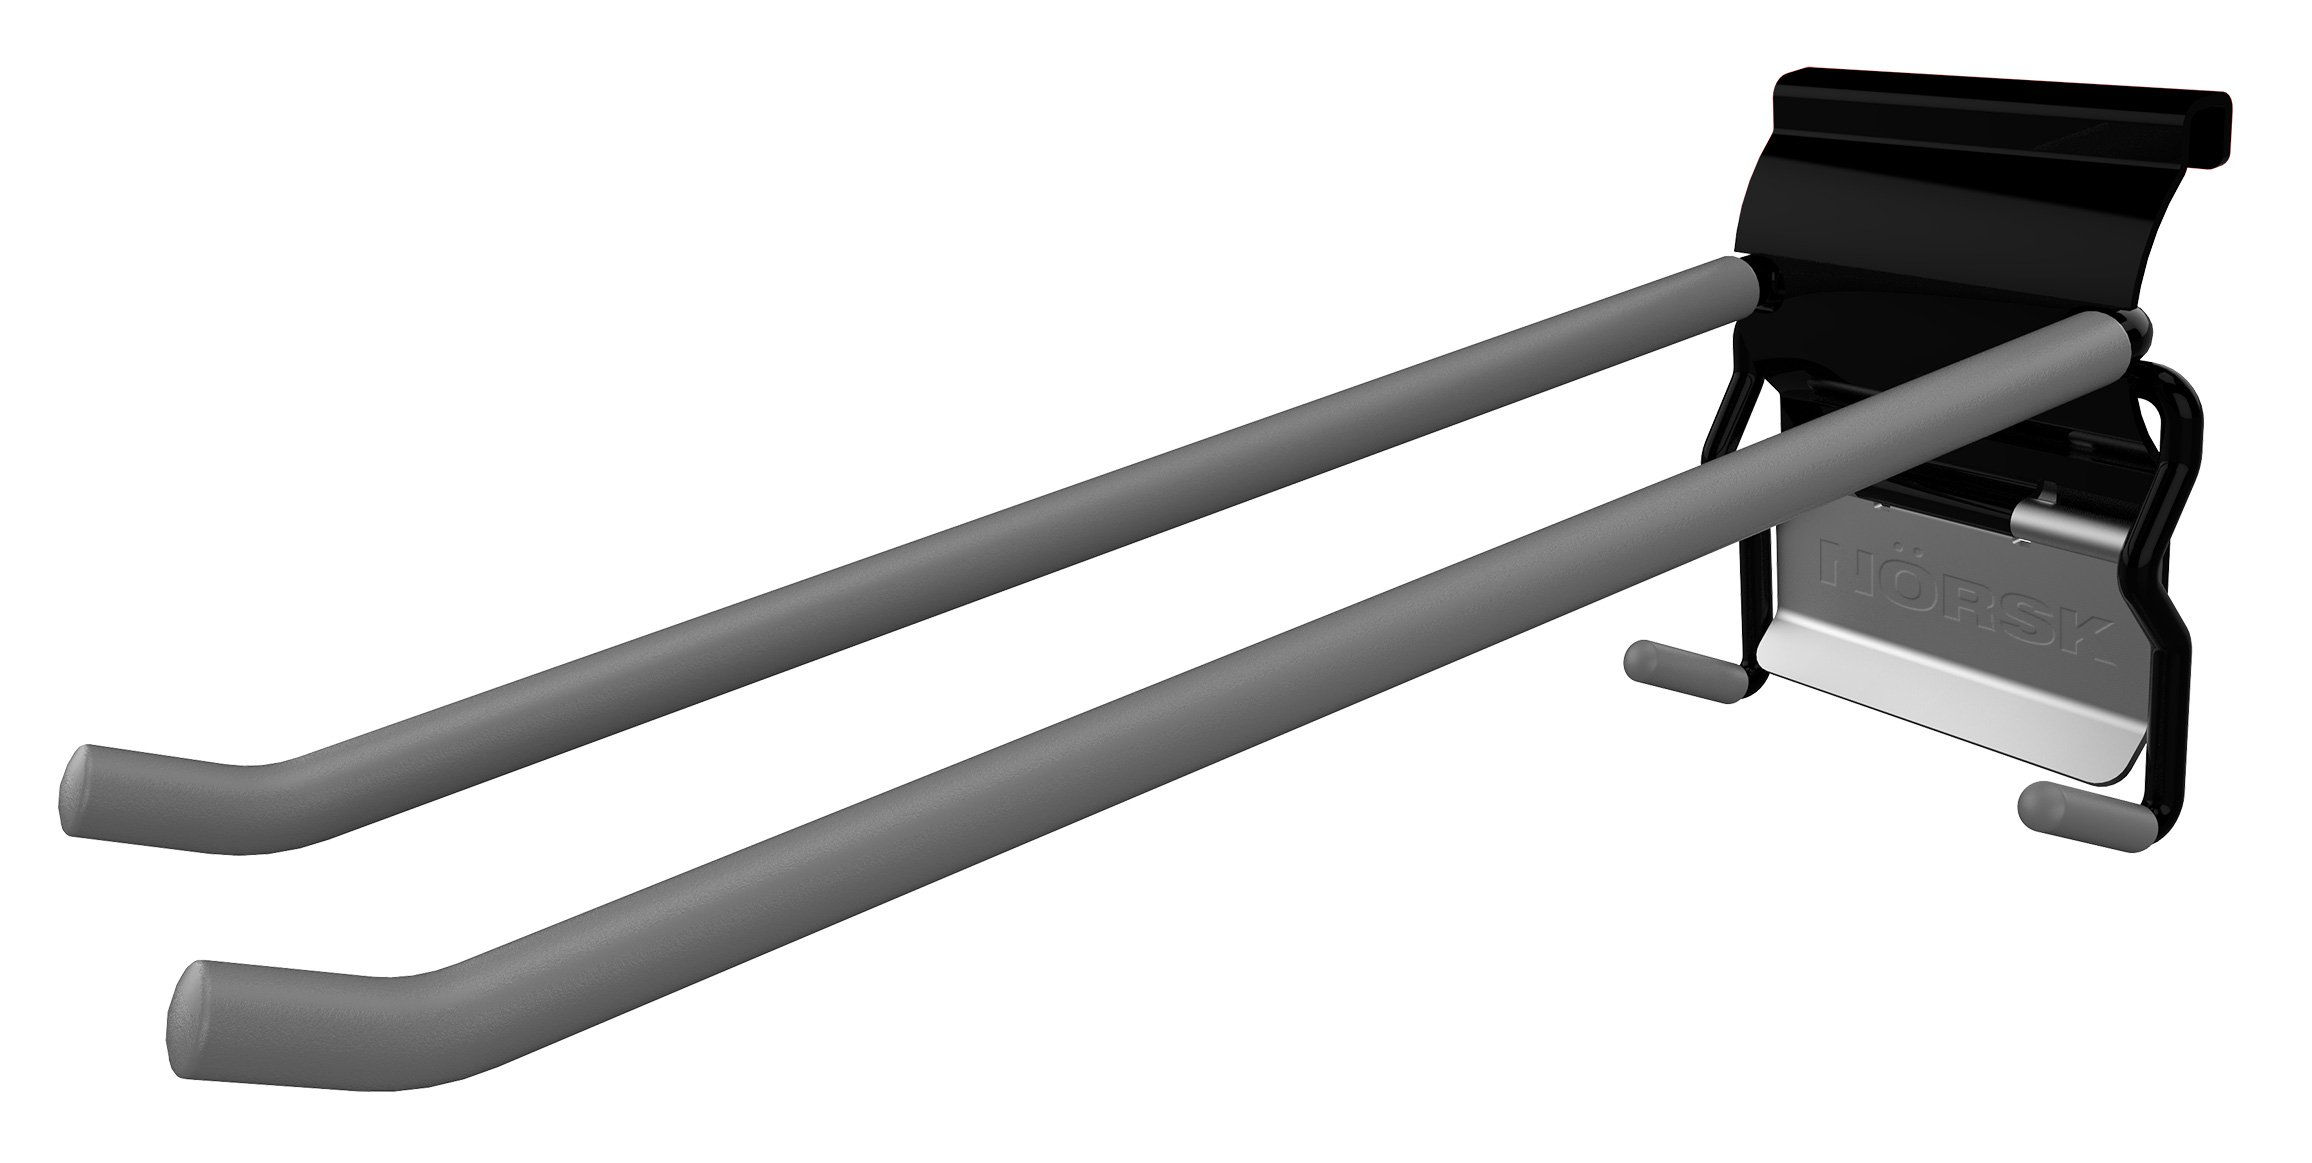 NorskWall 10'' Quad Slat Wall Hook 2 Pack